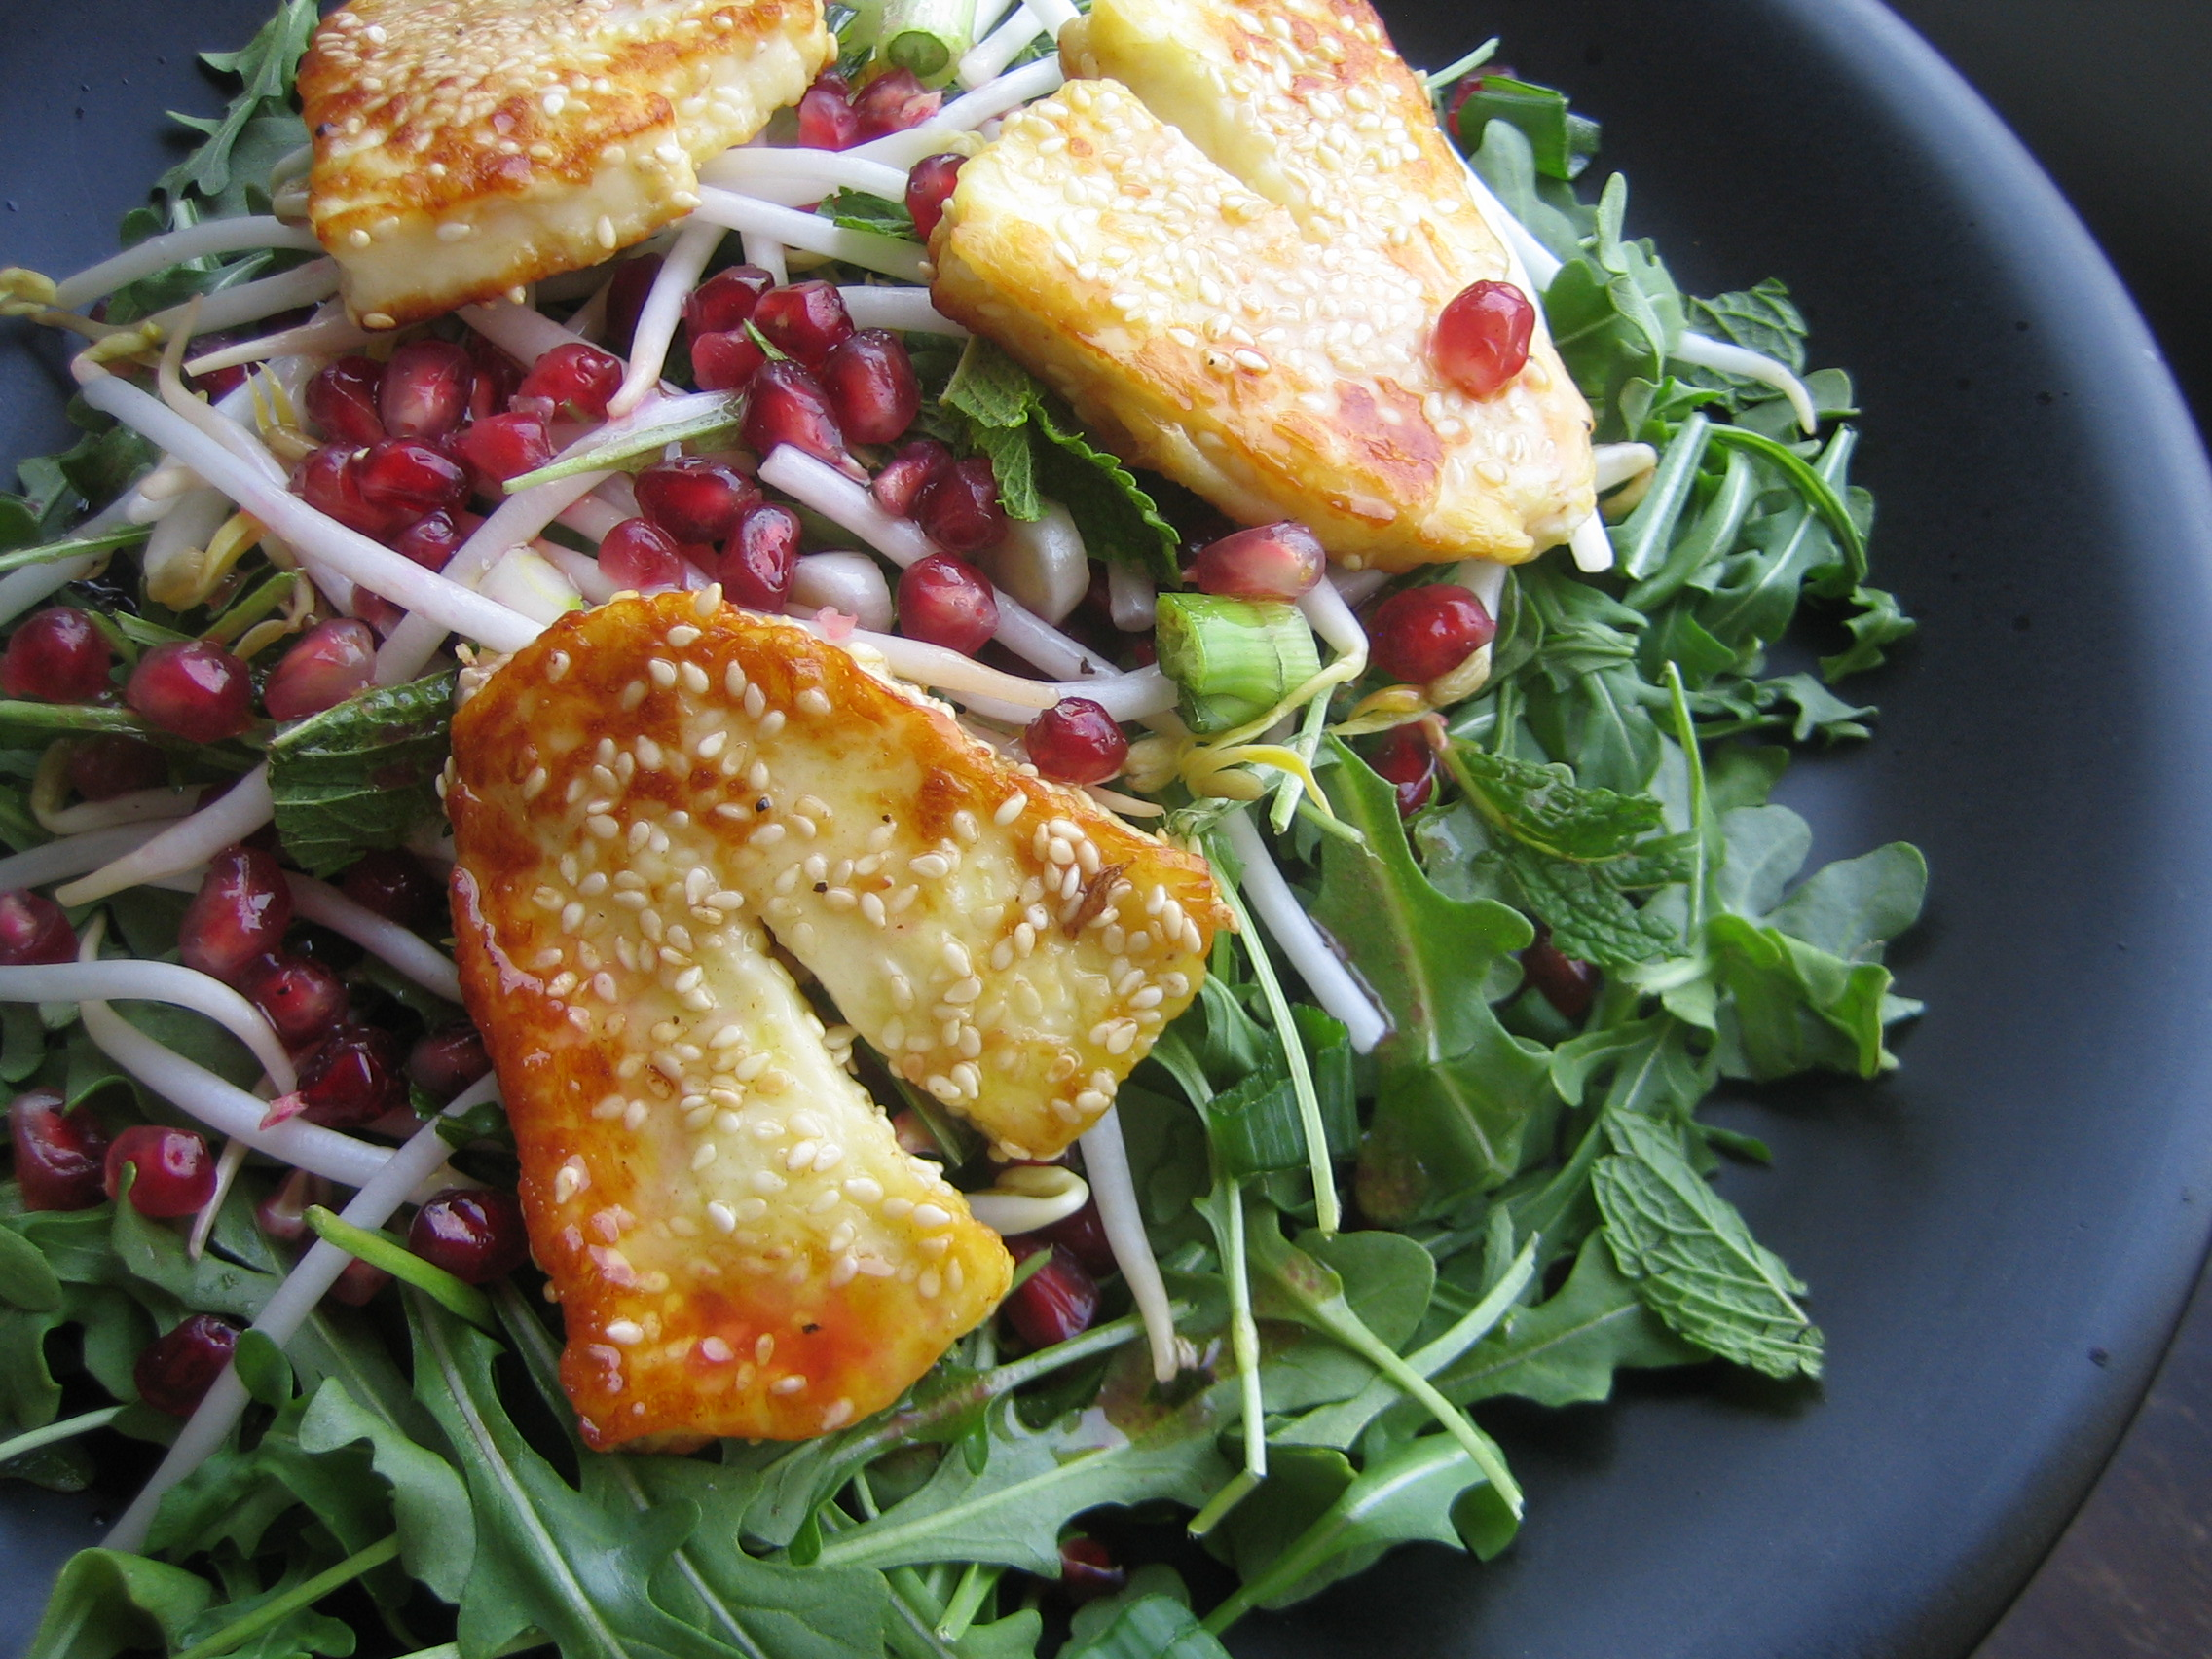 Sesame-Fried Halloumi and Pomegranate Salad